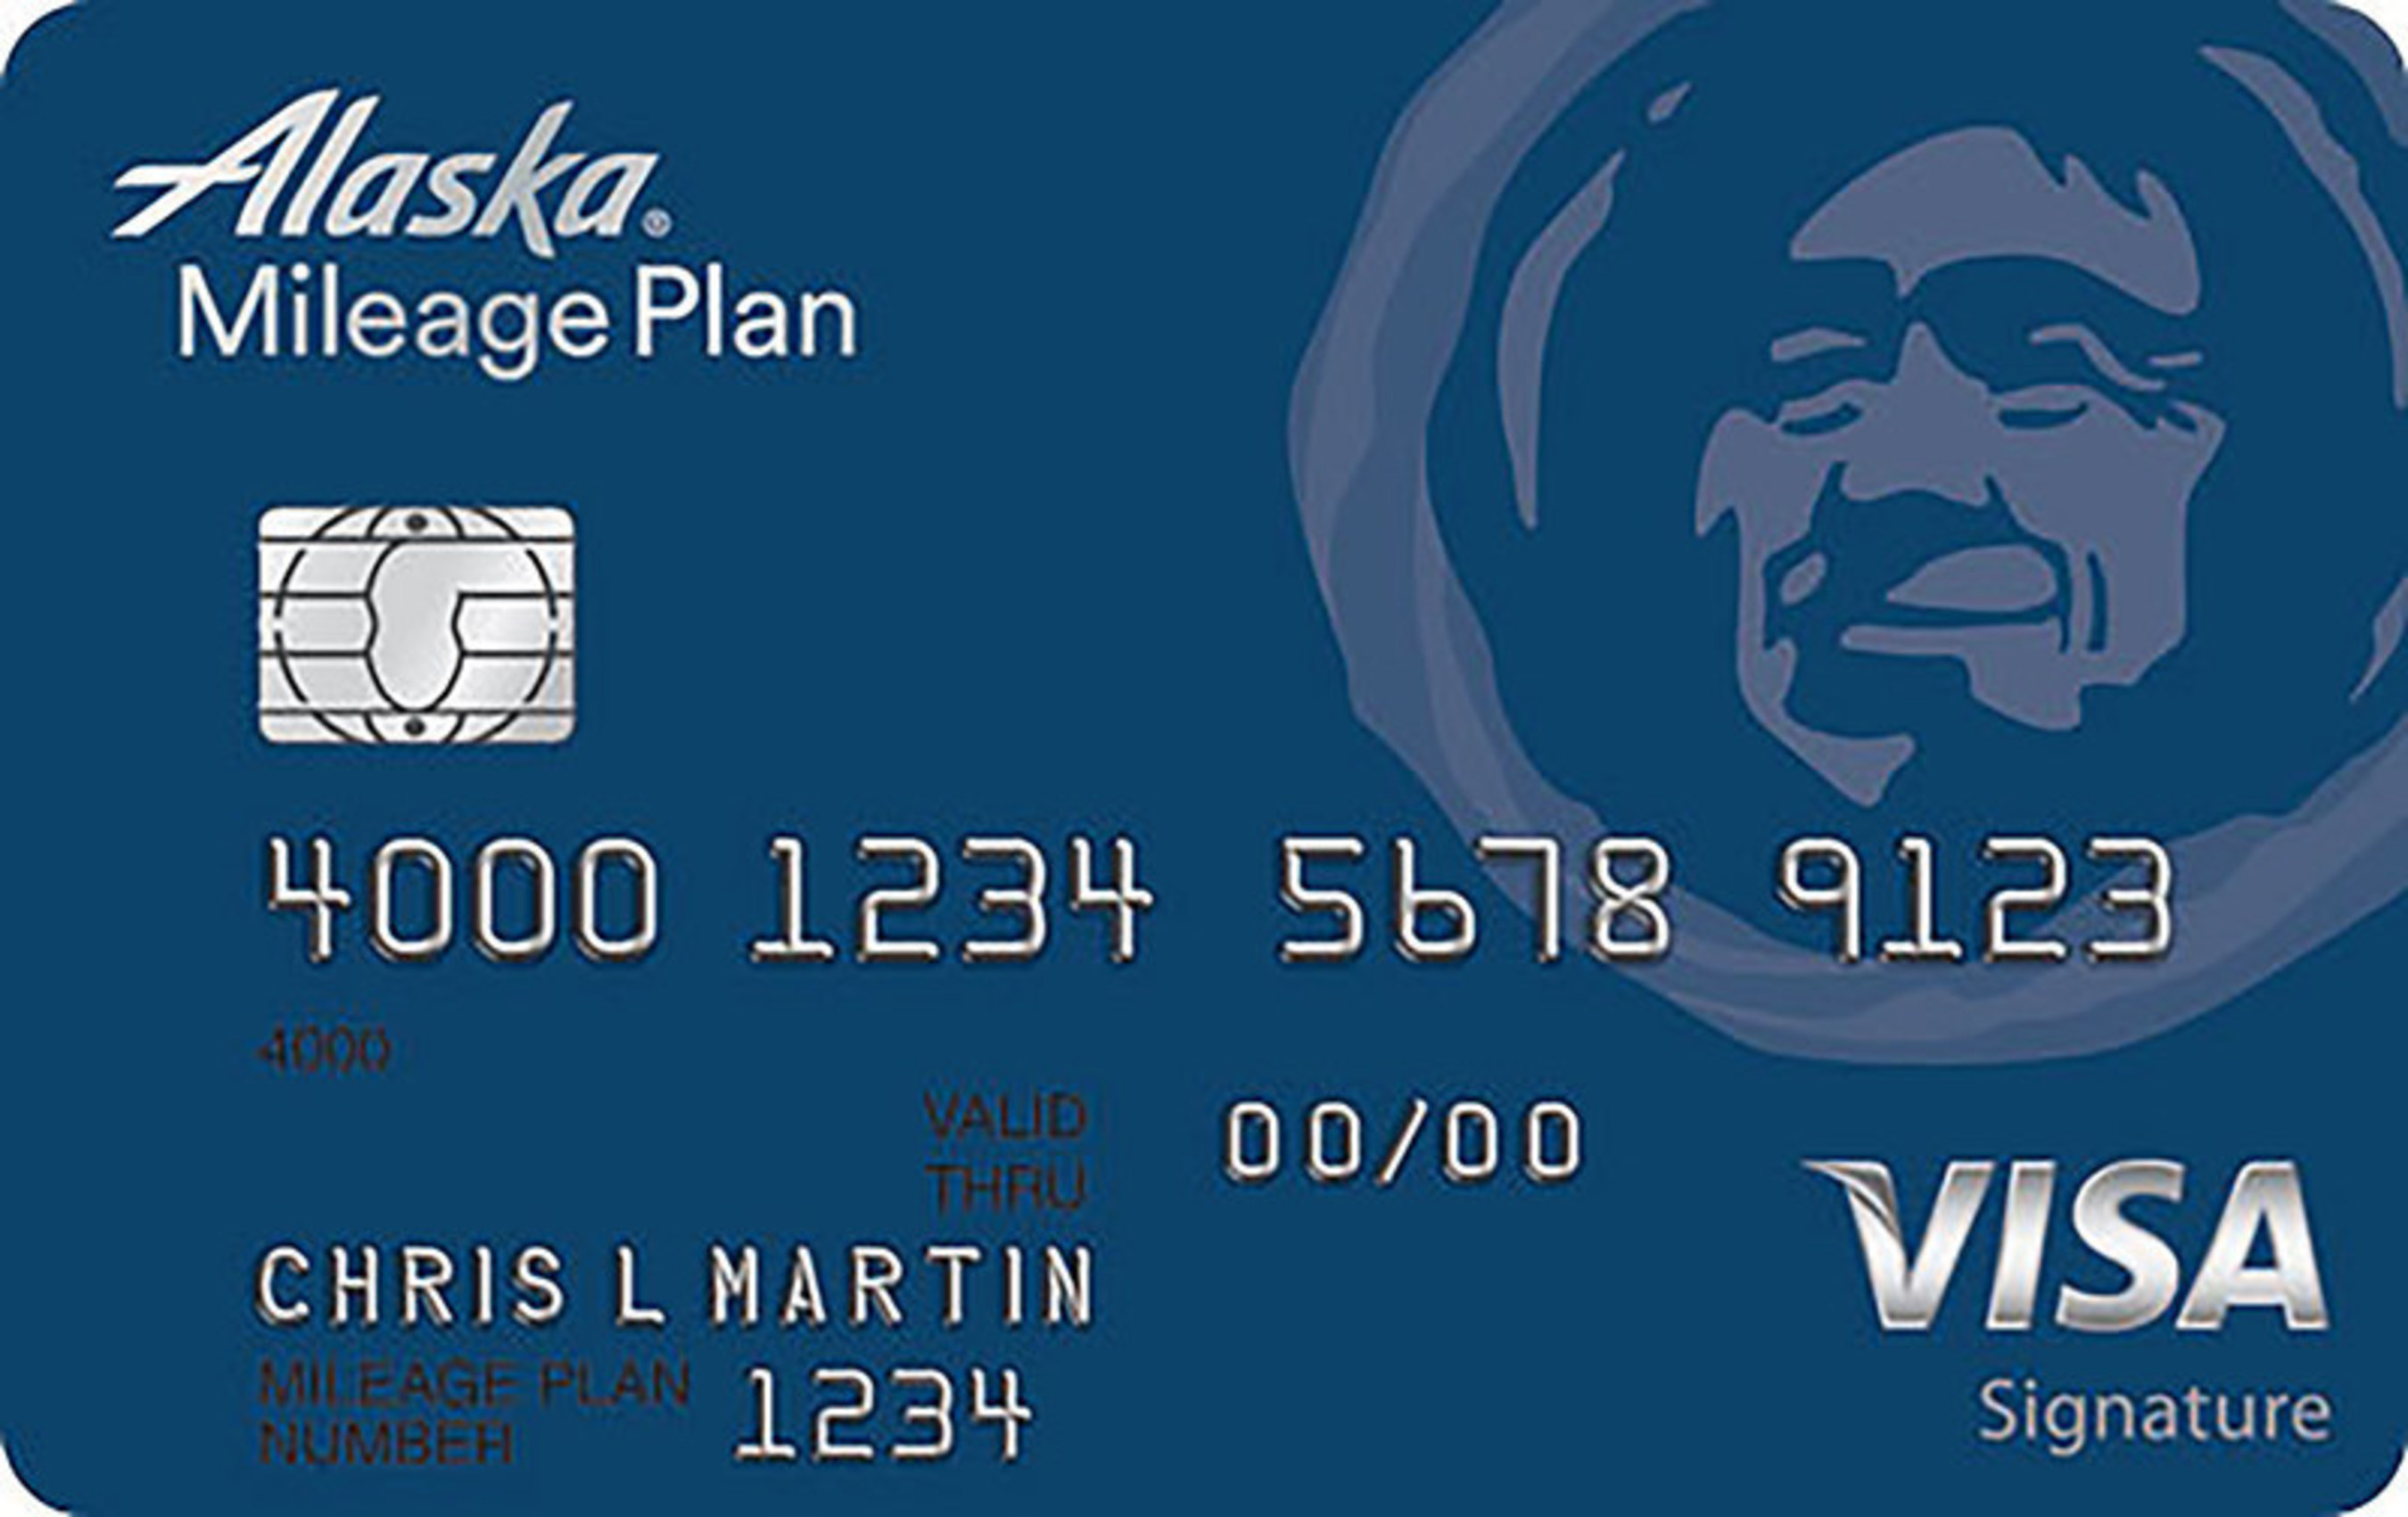 Starting today, new cardholders will also begin to receive cards updated with the airline's refreshed branding.